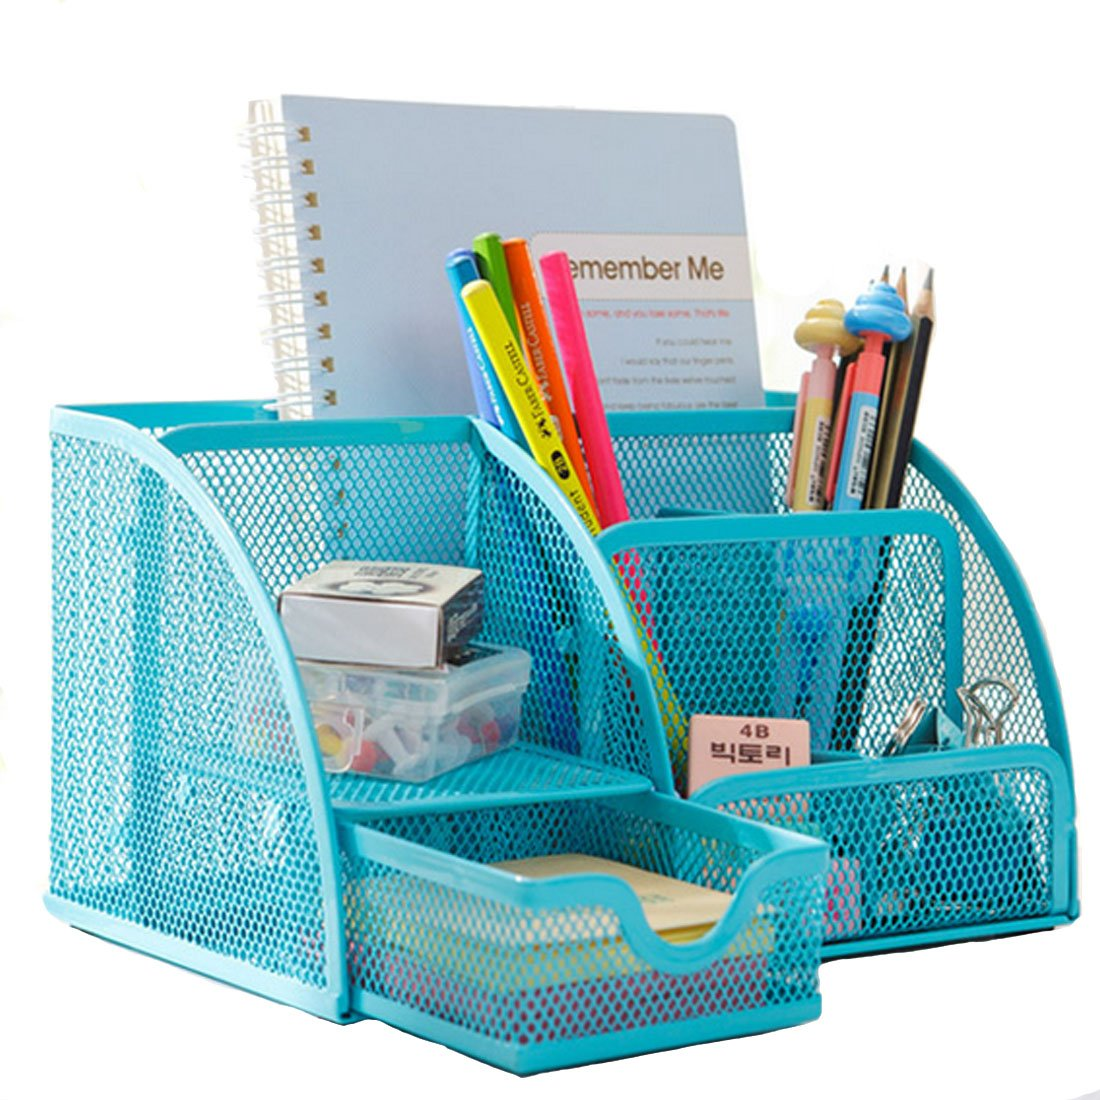 Leben Office Desk Organiser Pen Holder Metal Mesh Pencil Pens Stationery  Container Desk Tidy: Amazon.co.uk: Office Products